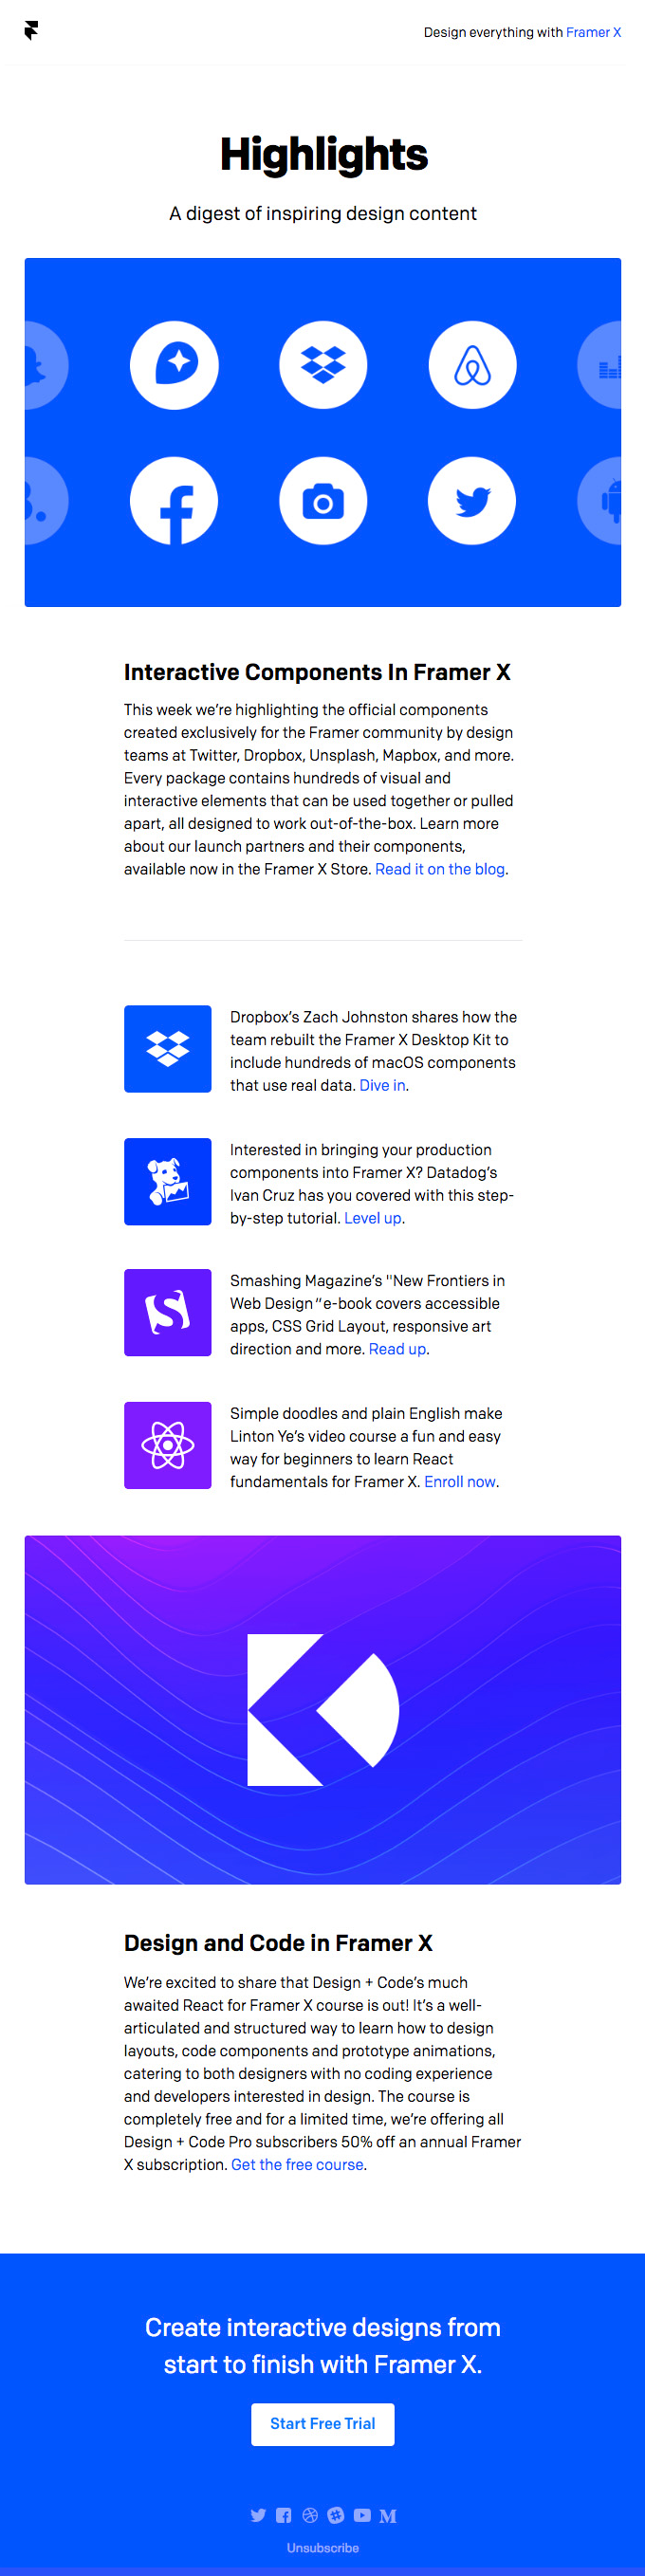 Interactive Components Made By Top Design Teams & Framer X React Courses